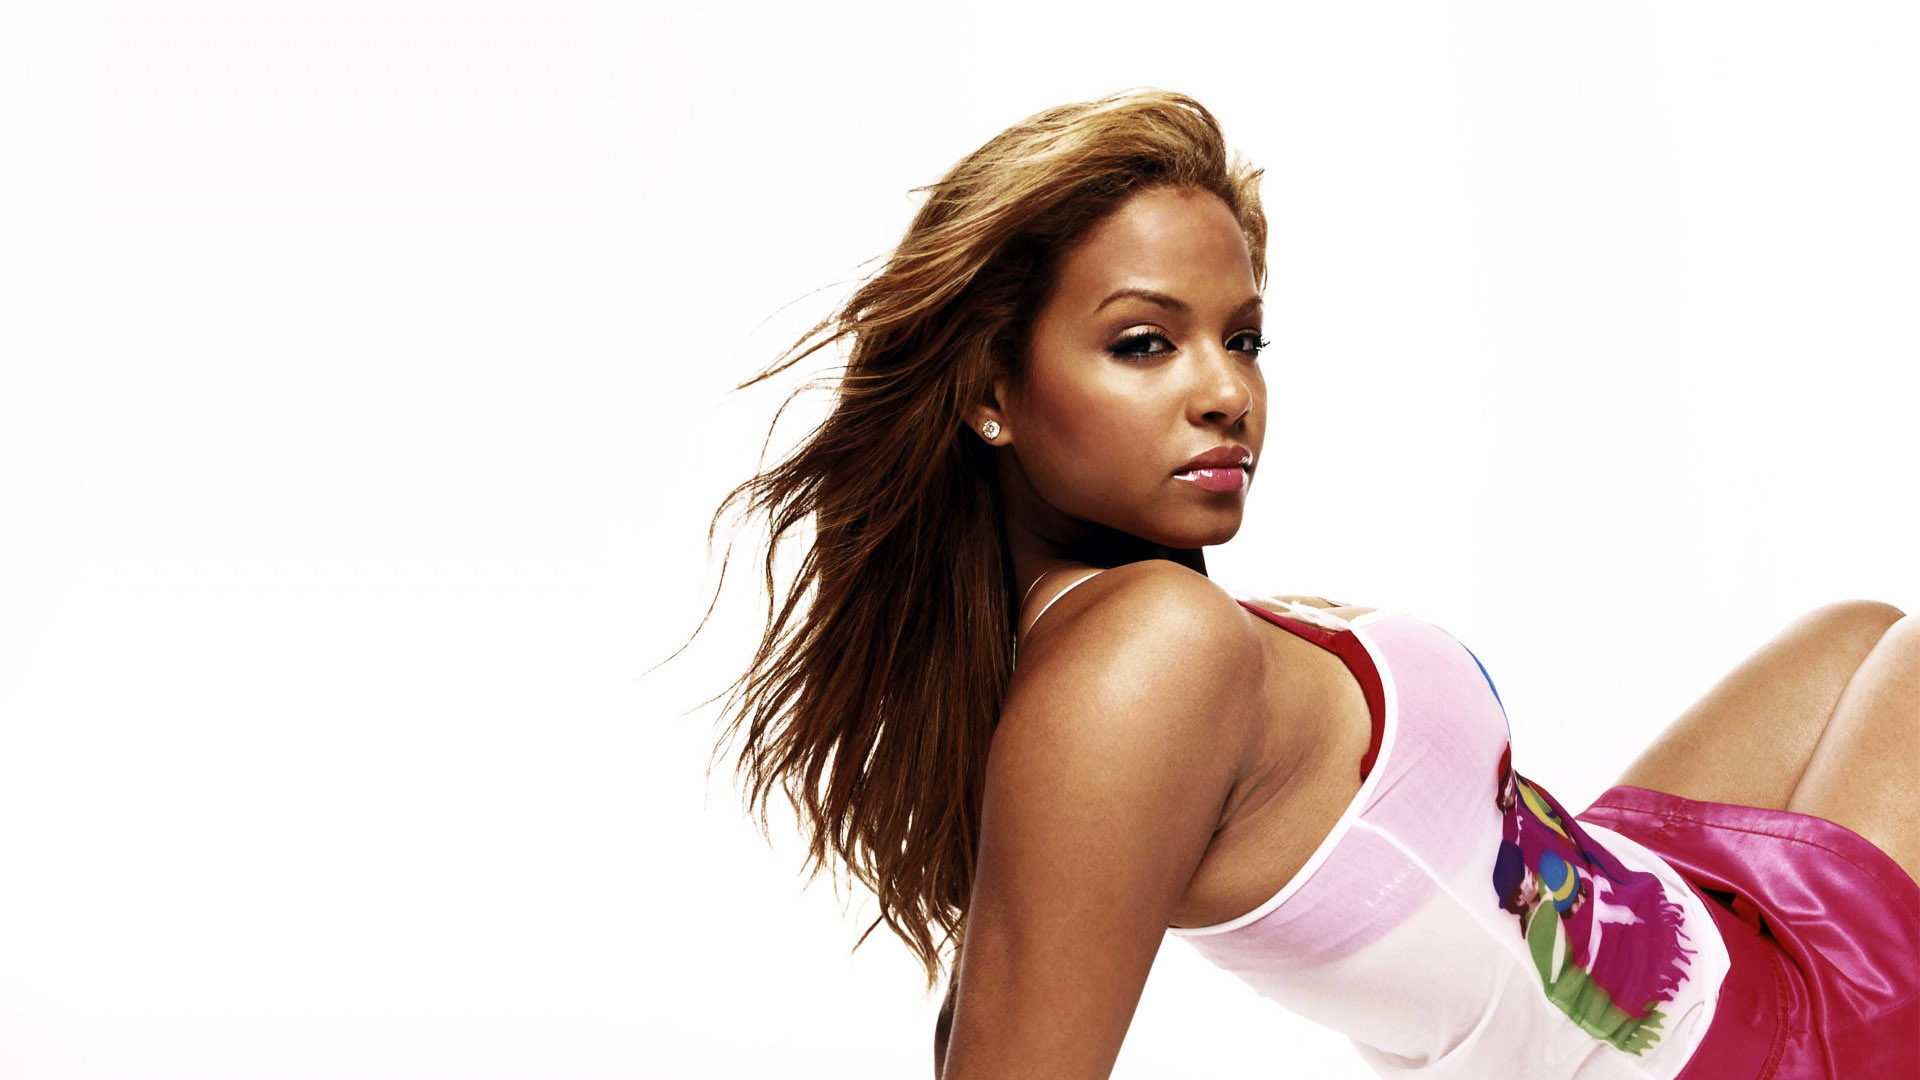 Christina Milian  Hot HD Wallpaper Wallpaper